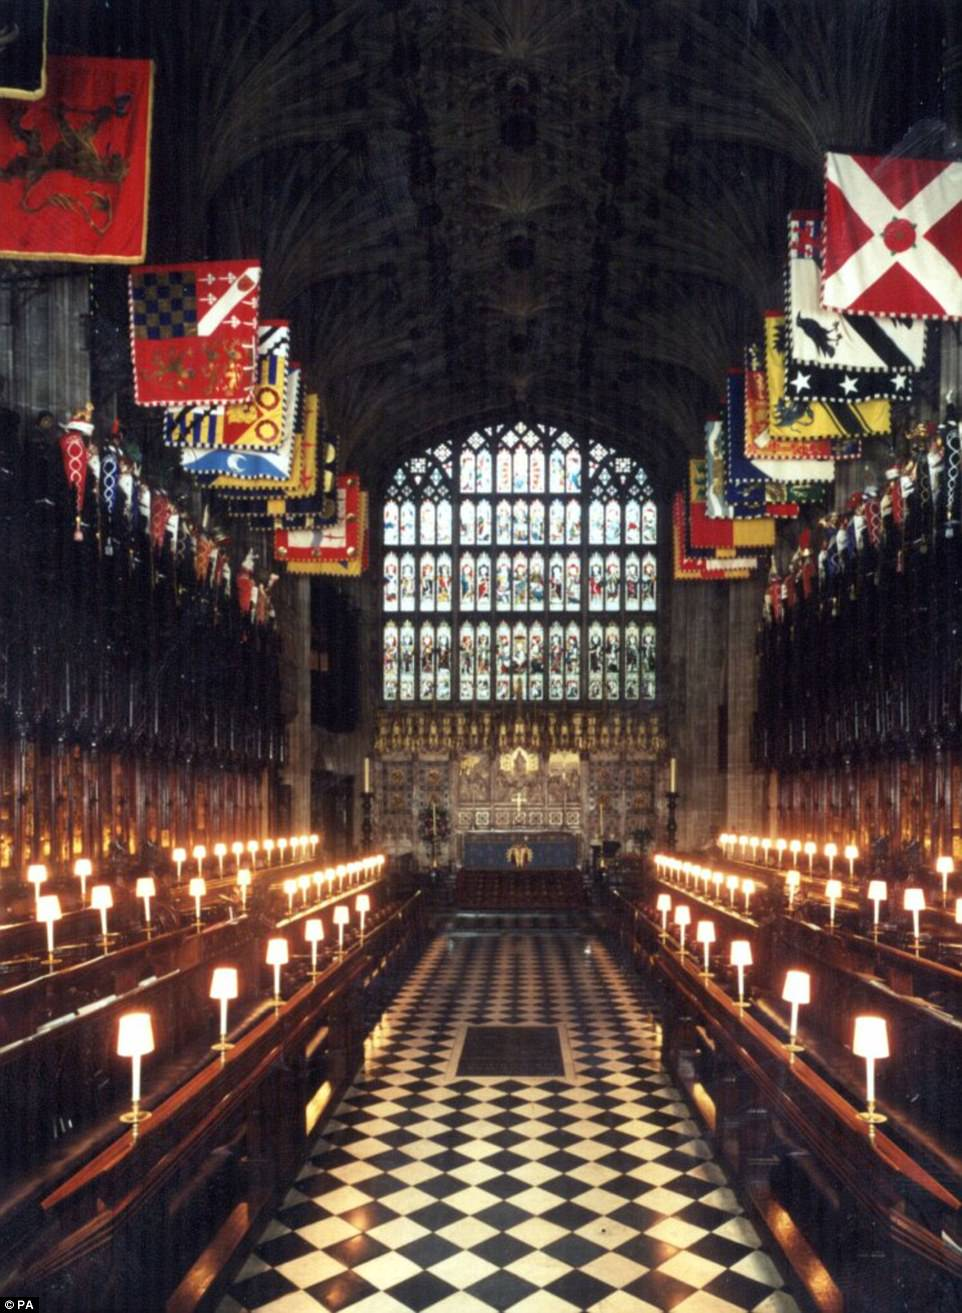 The interior of St George's Chapel, Windsor Castle which has been chosen as the venue for the weddings of Prince Harry and Meghan Markle, as well as Princess Eugenie and Jack Brooksbank